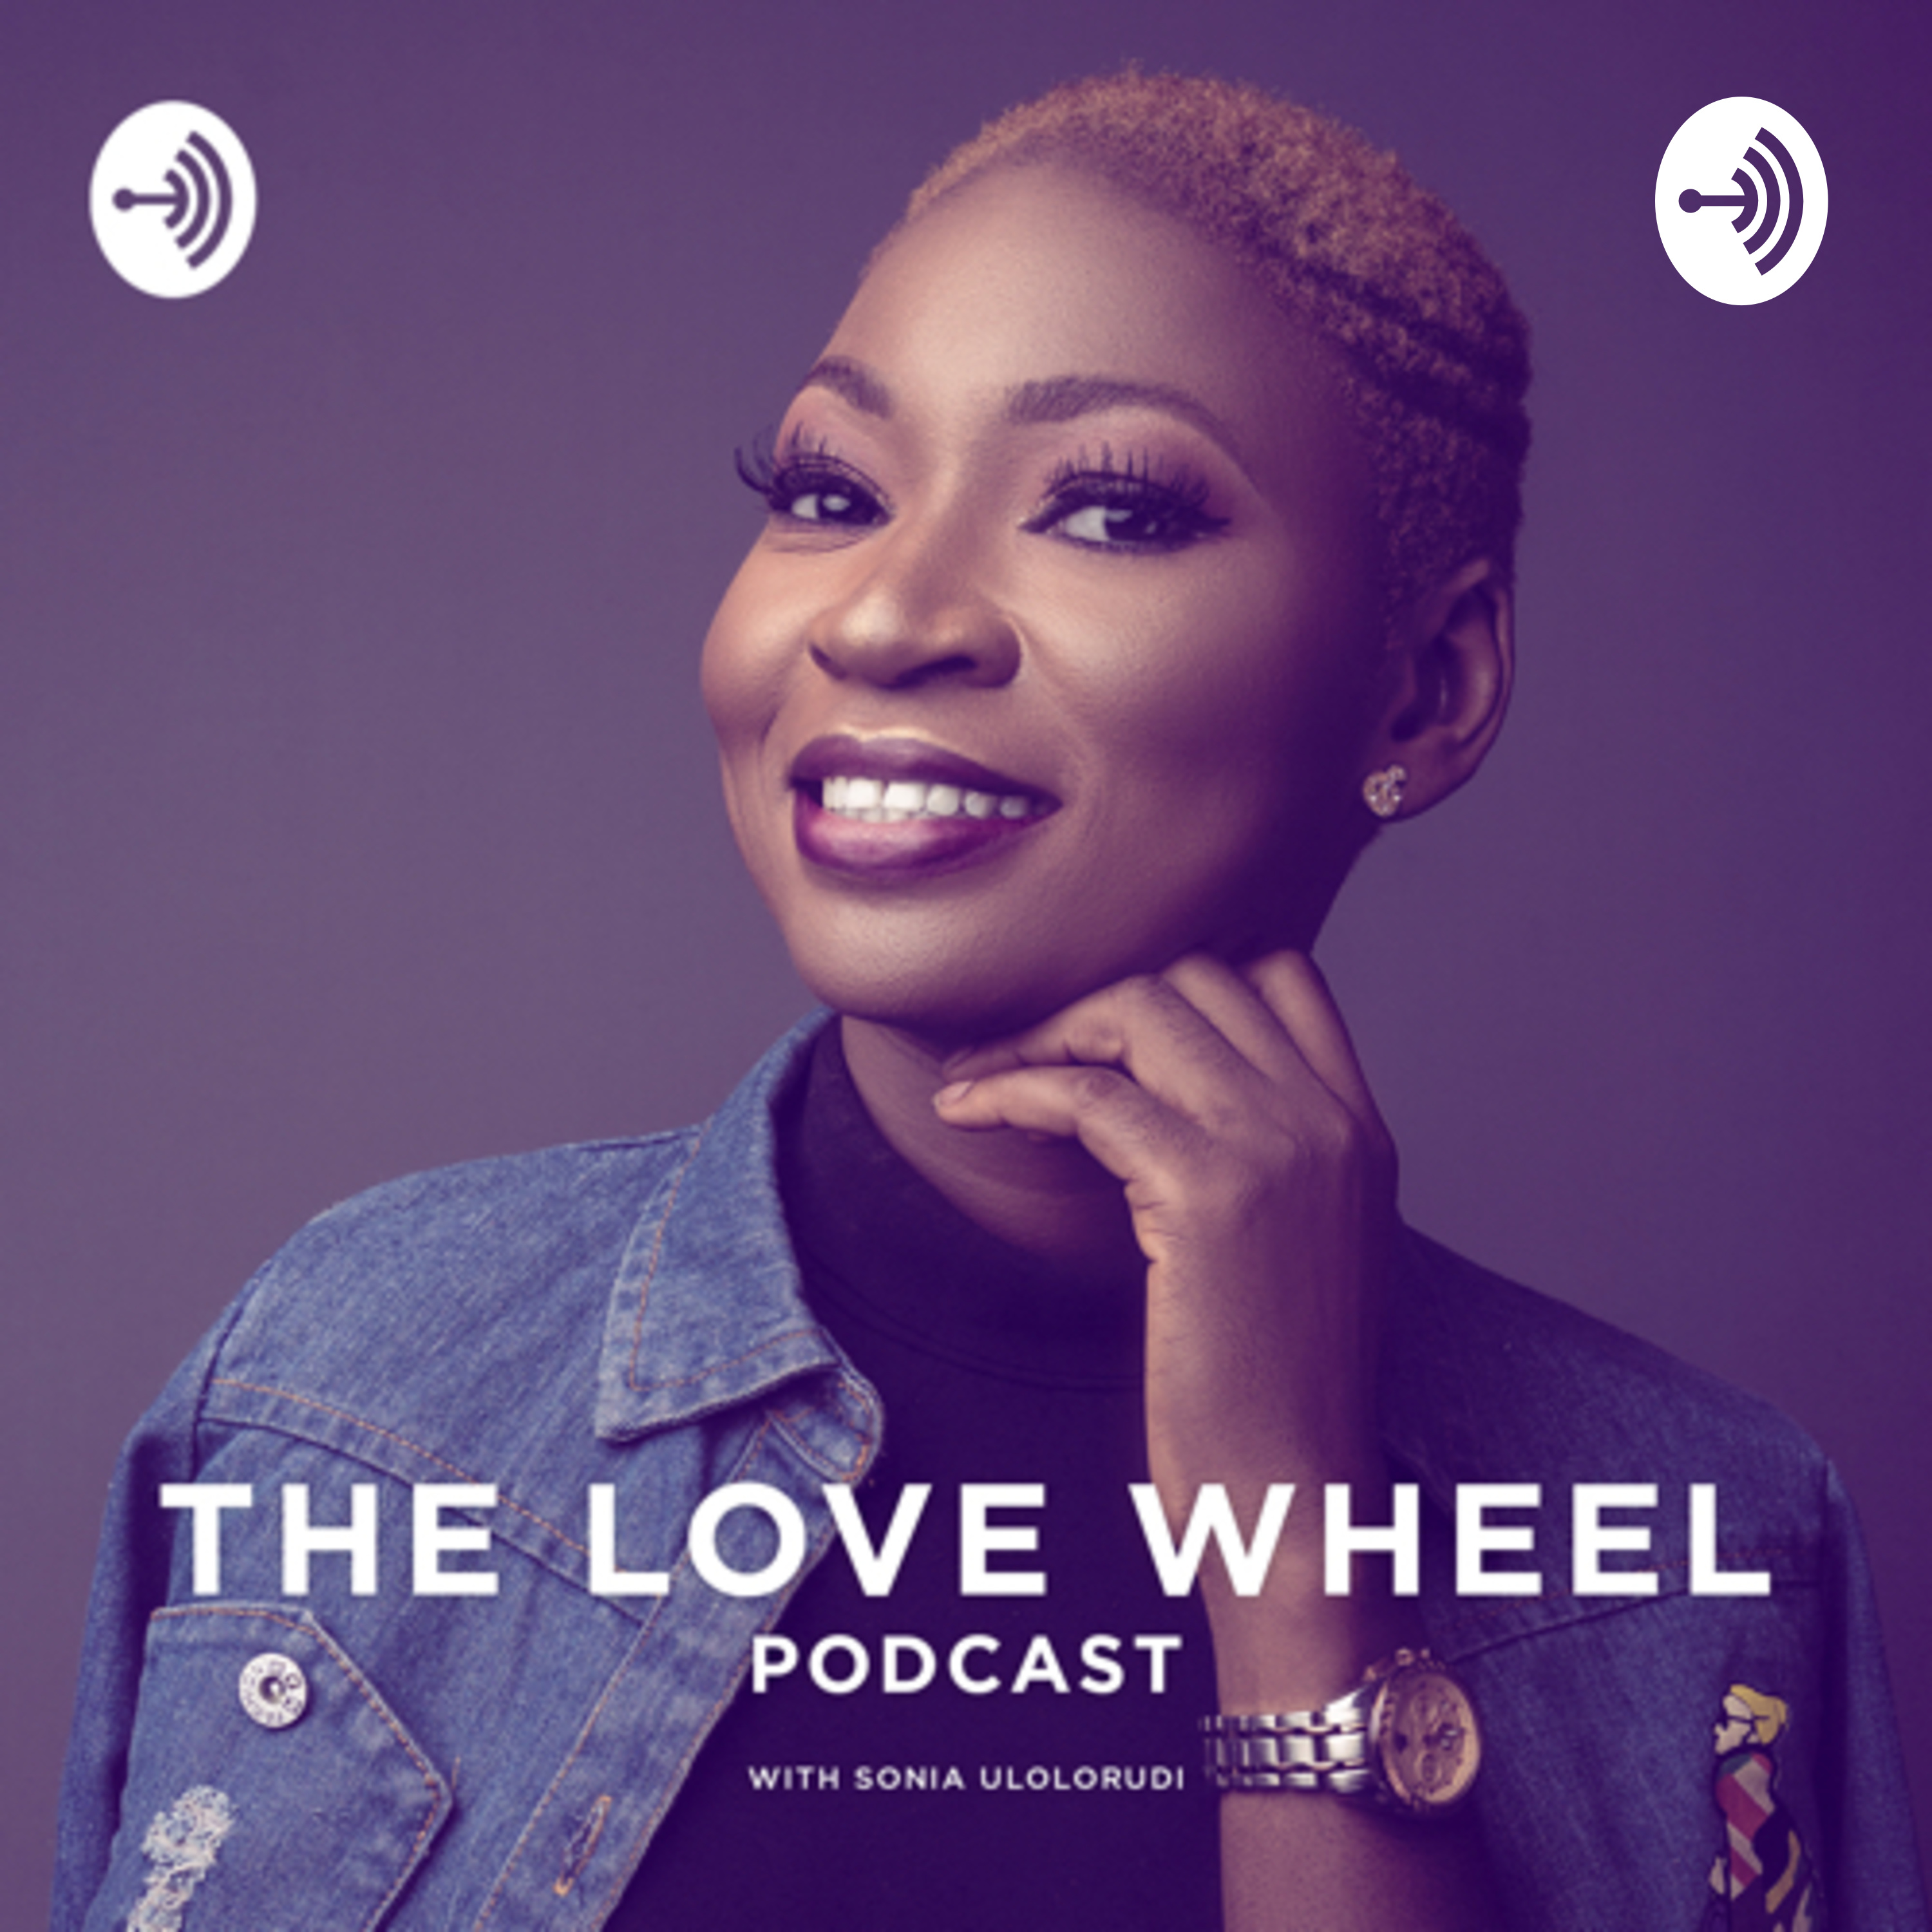 The Love Wheel Podcast